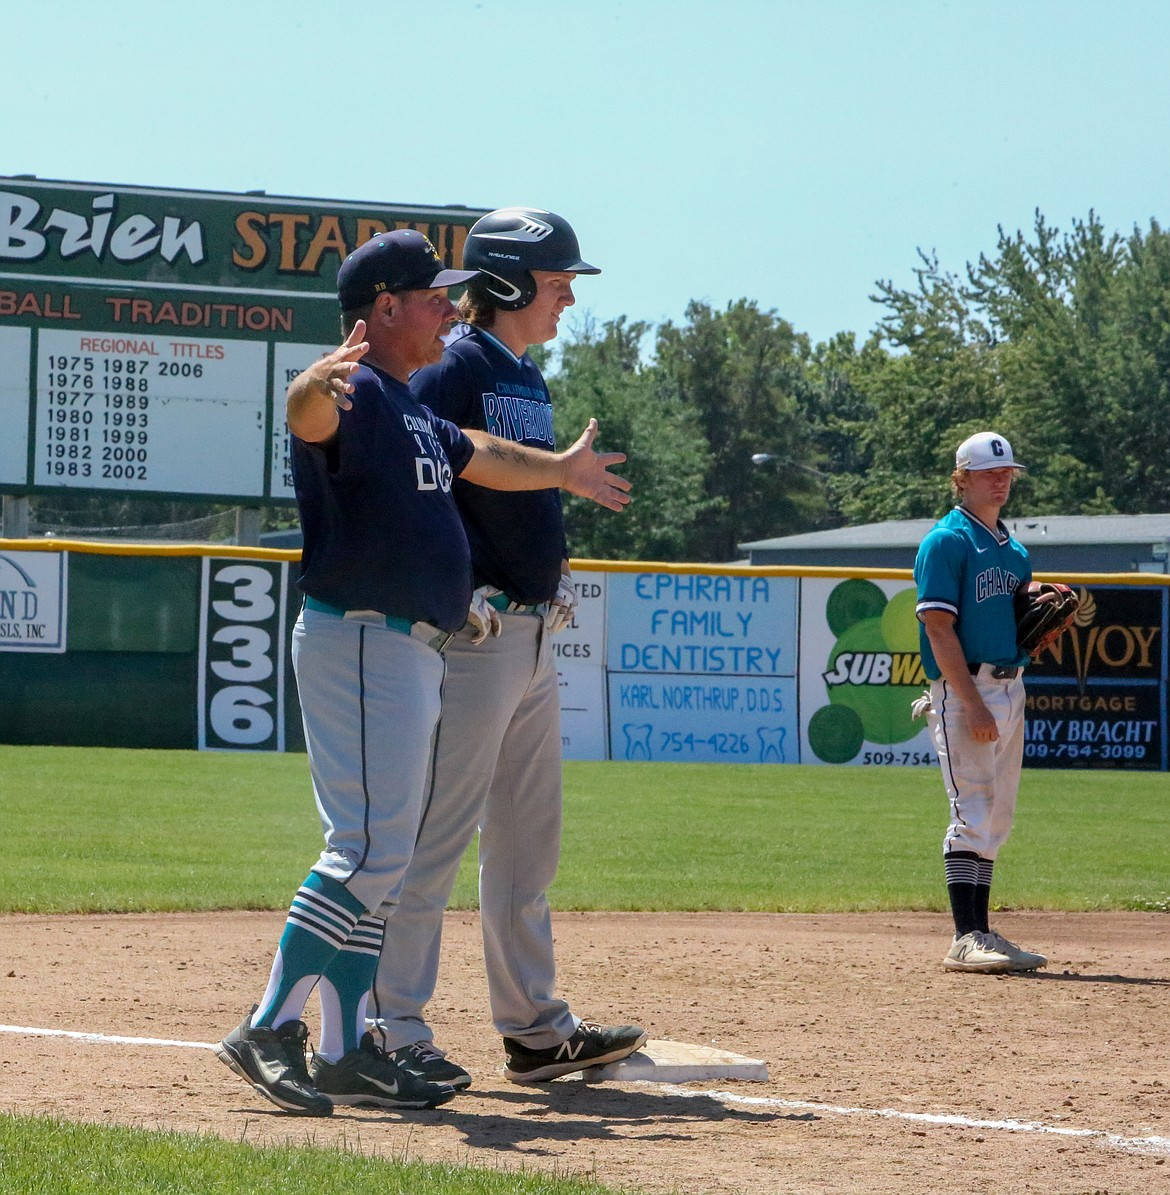 Riverdogs head coach Donnie Lindgren gives instructions to his runner on first base with Gavin Burns waiting behind him on third base Saturday morning at the Babe Ruth League Pacific Northwest 16-18U Regional Championship Tournament.